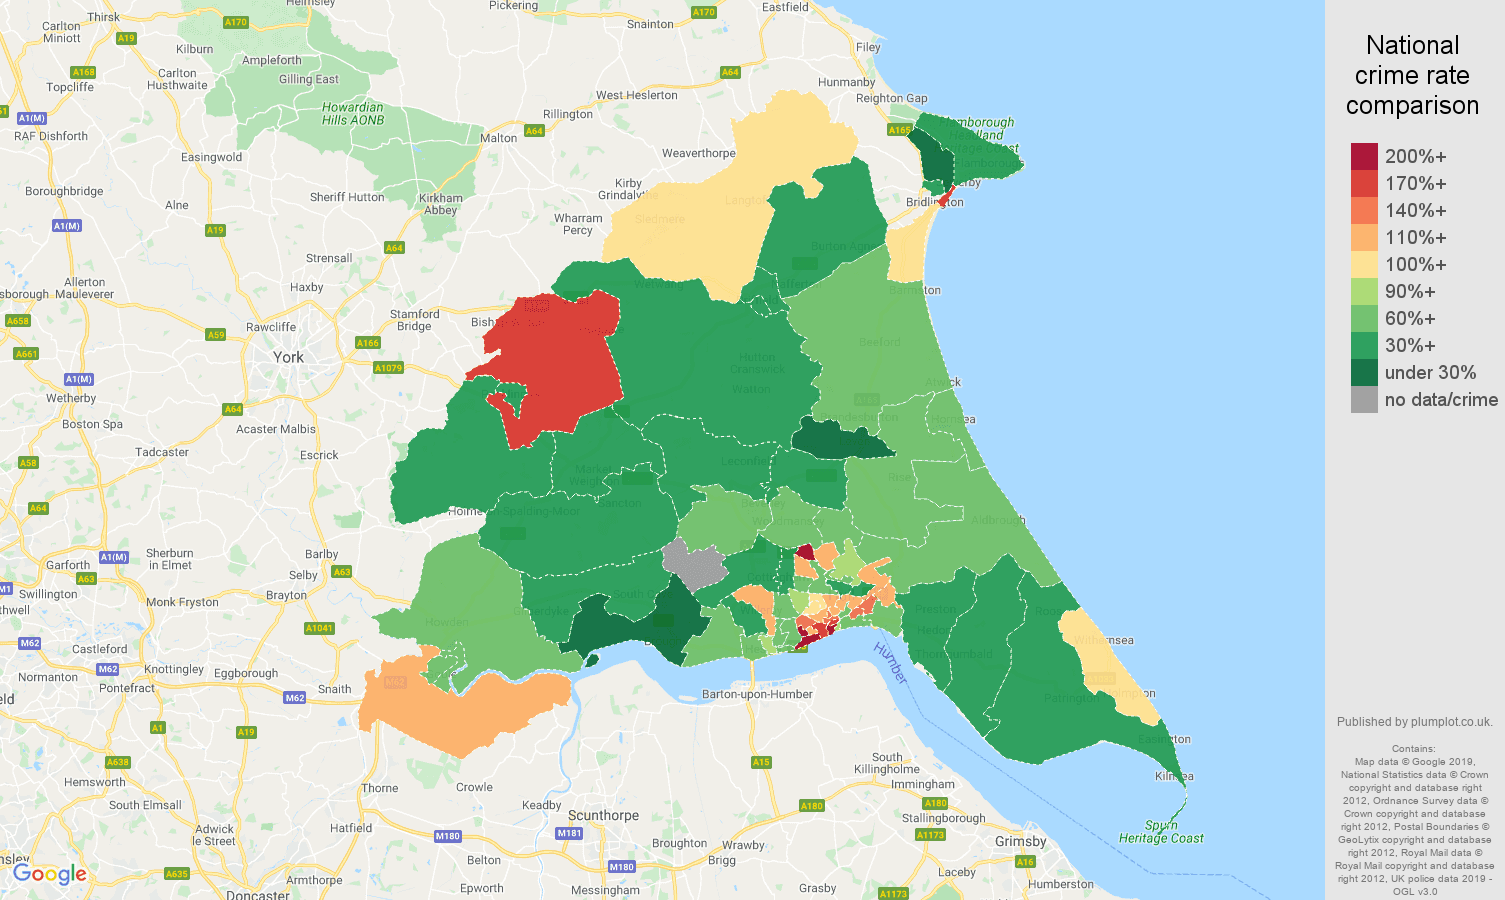 East Riding of Yorkshire other theft crime rate comparison map